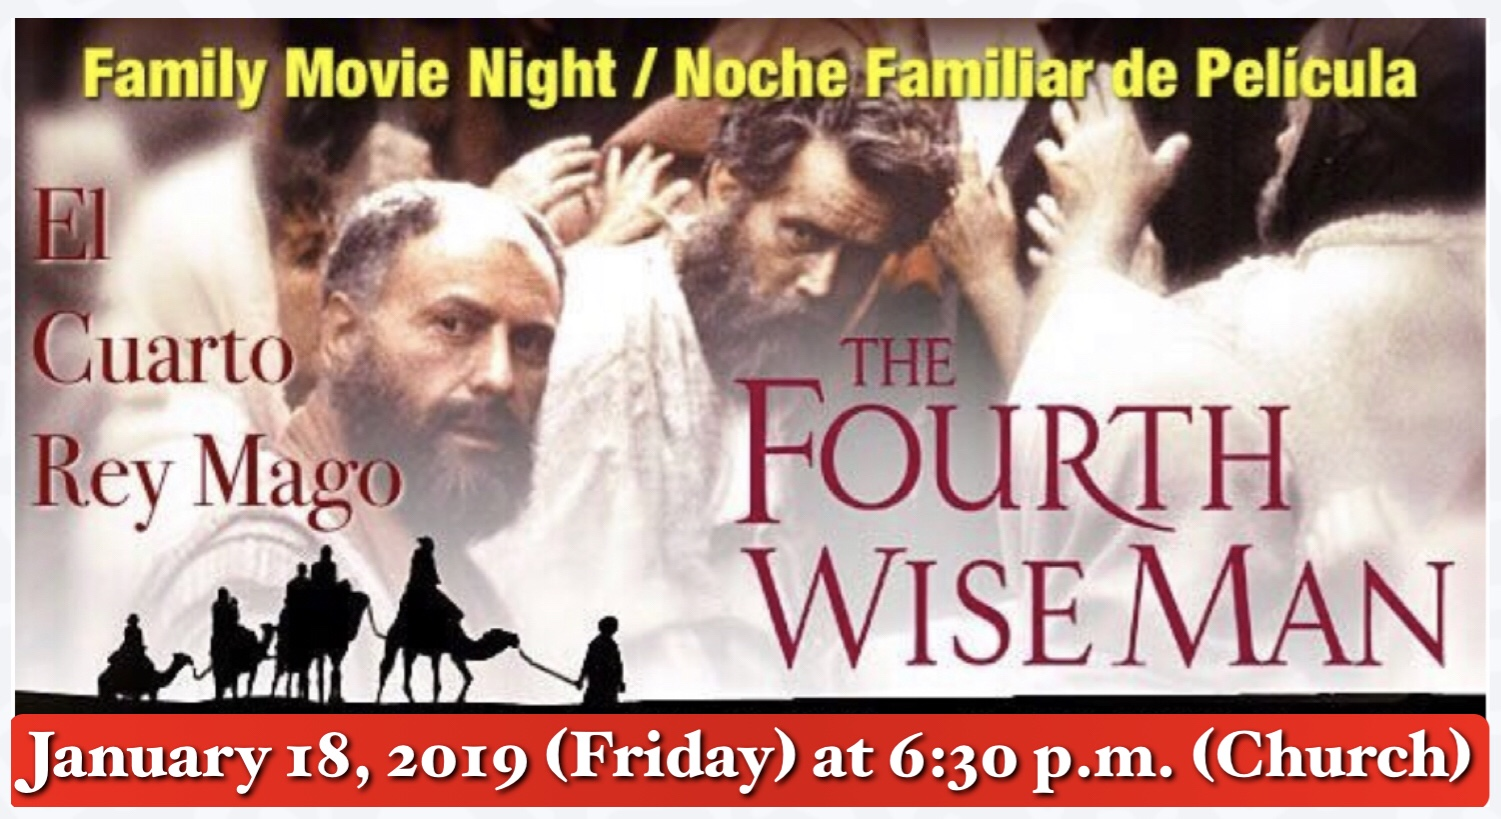 Family Movie Night – St. Anthony of Padua Parish